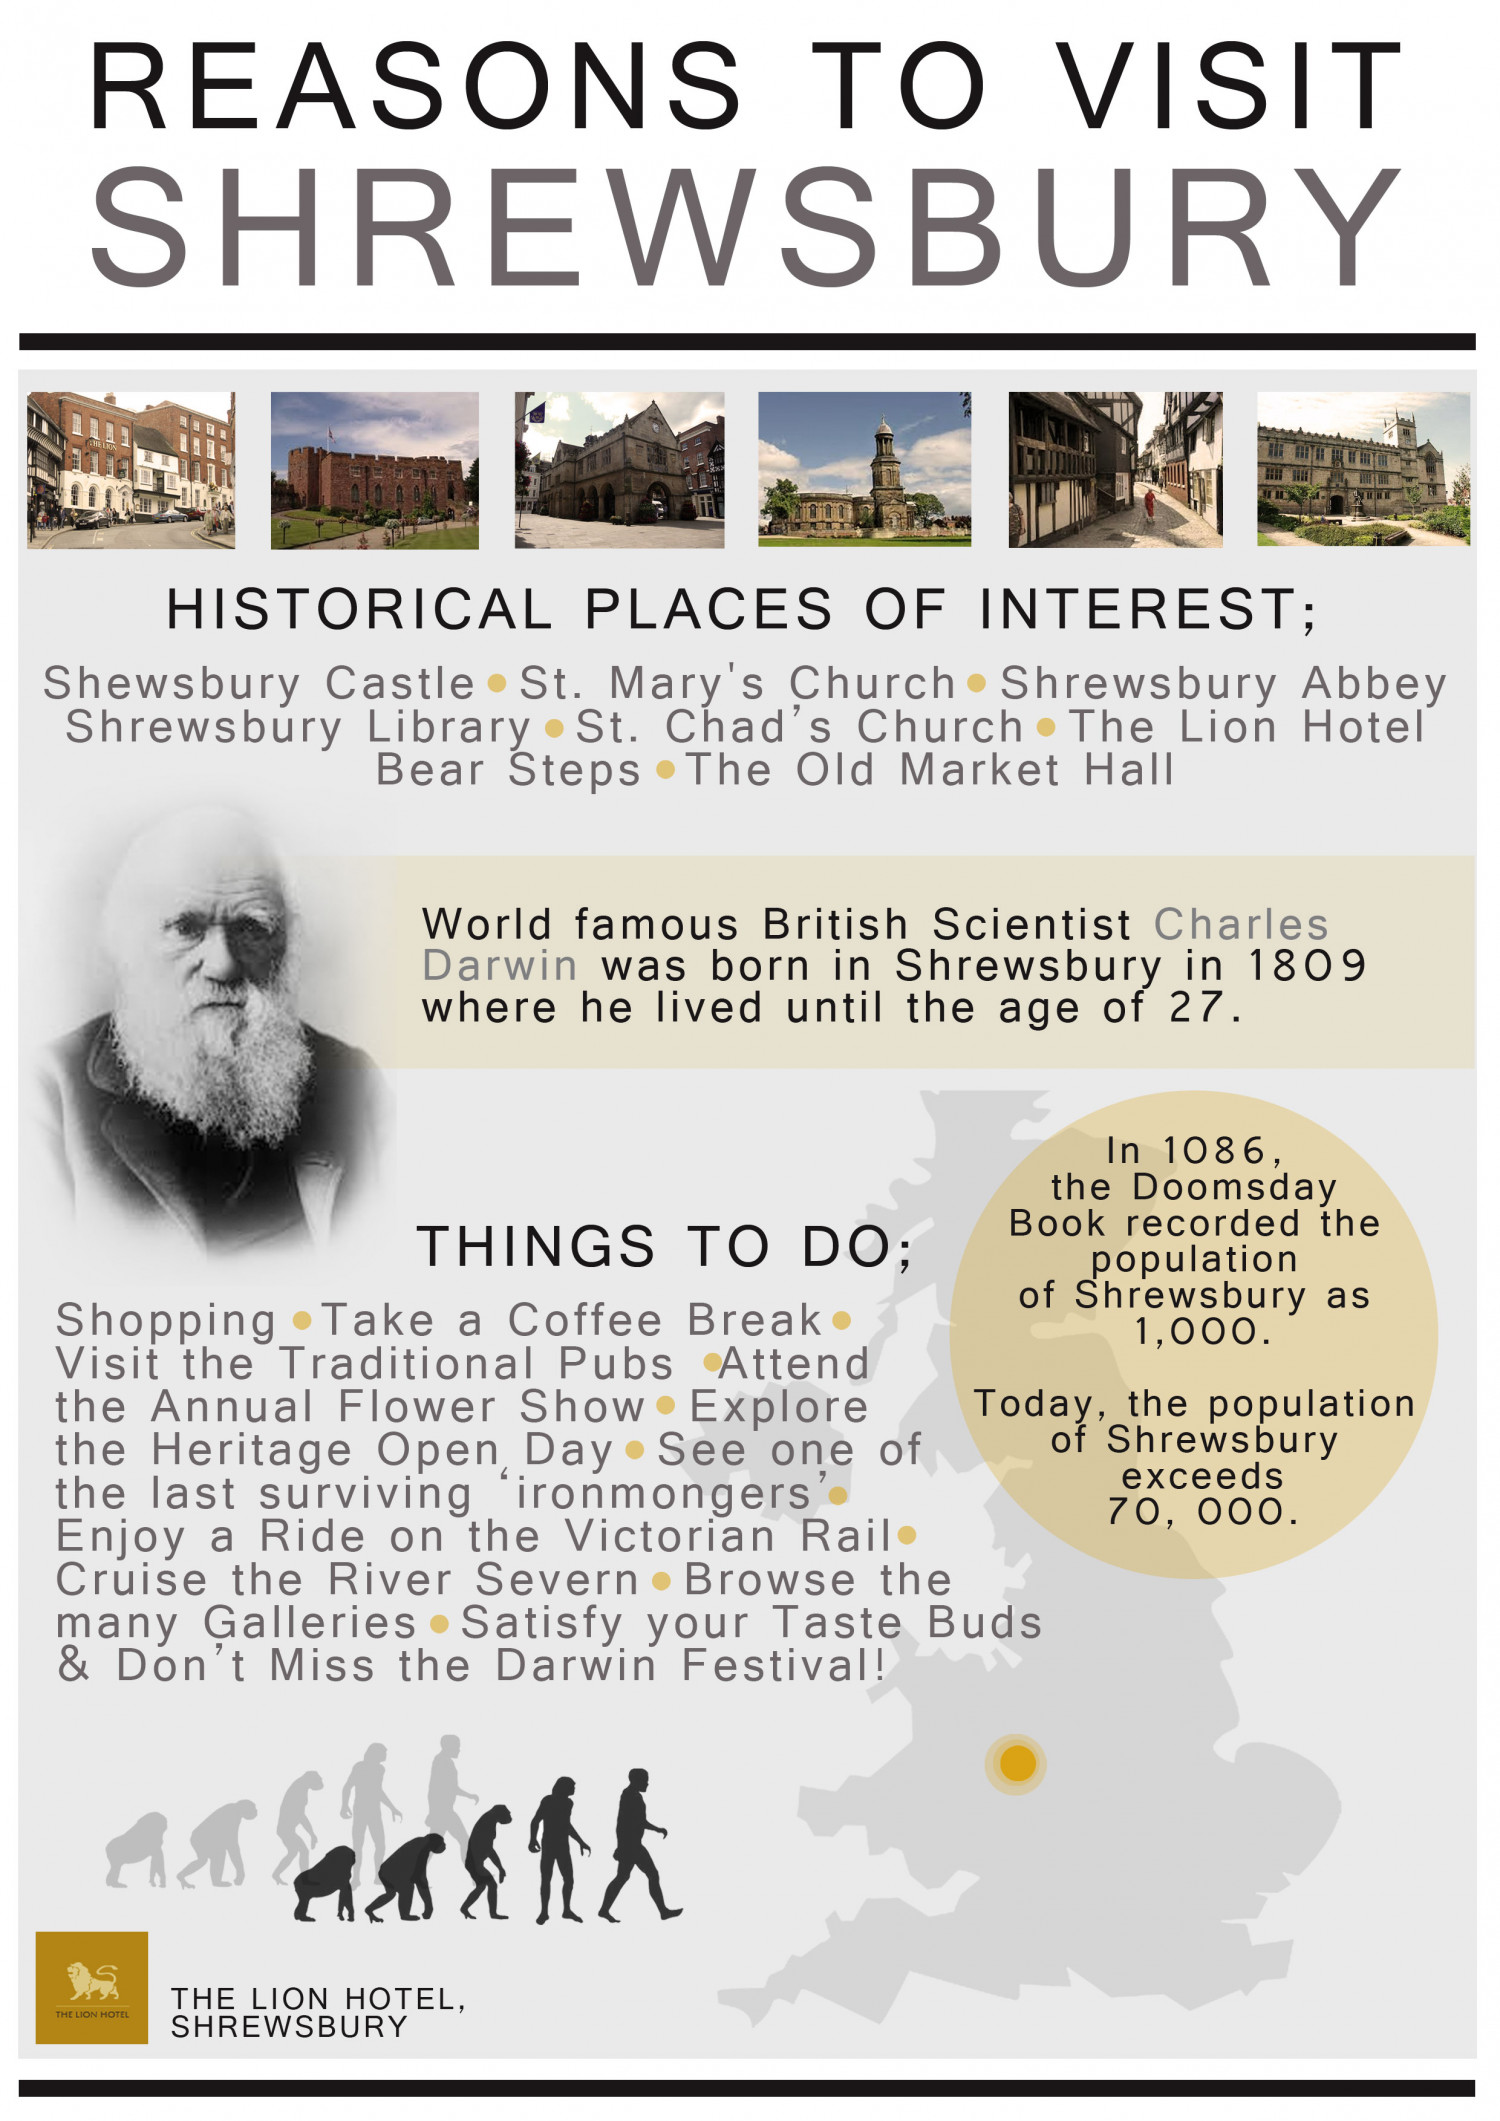 Reasons to Visit Shrewsbury Infographic